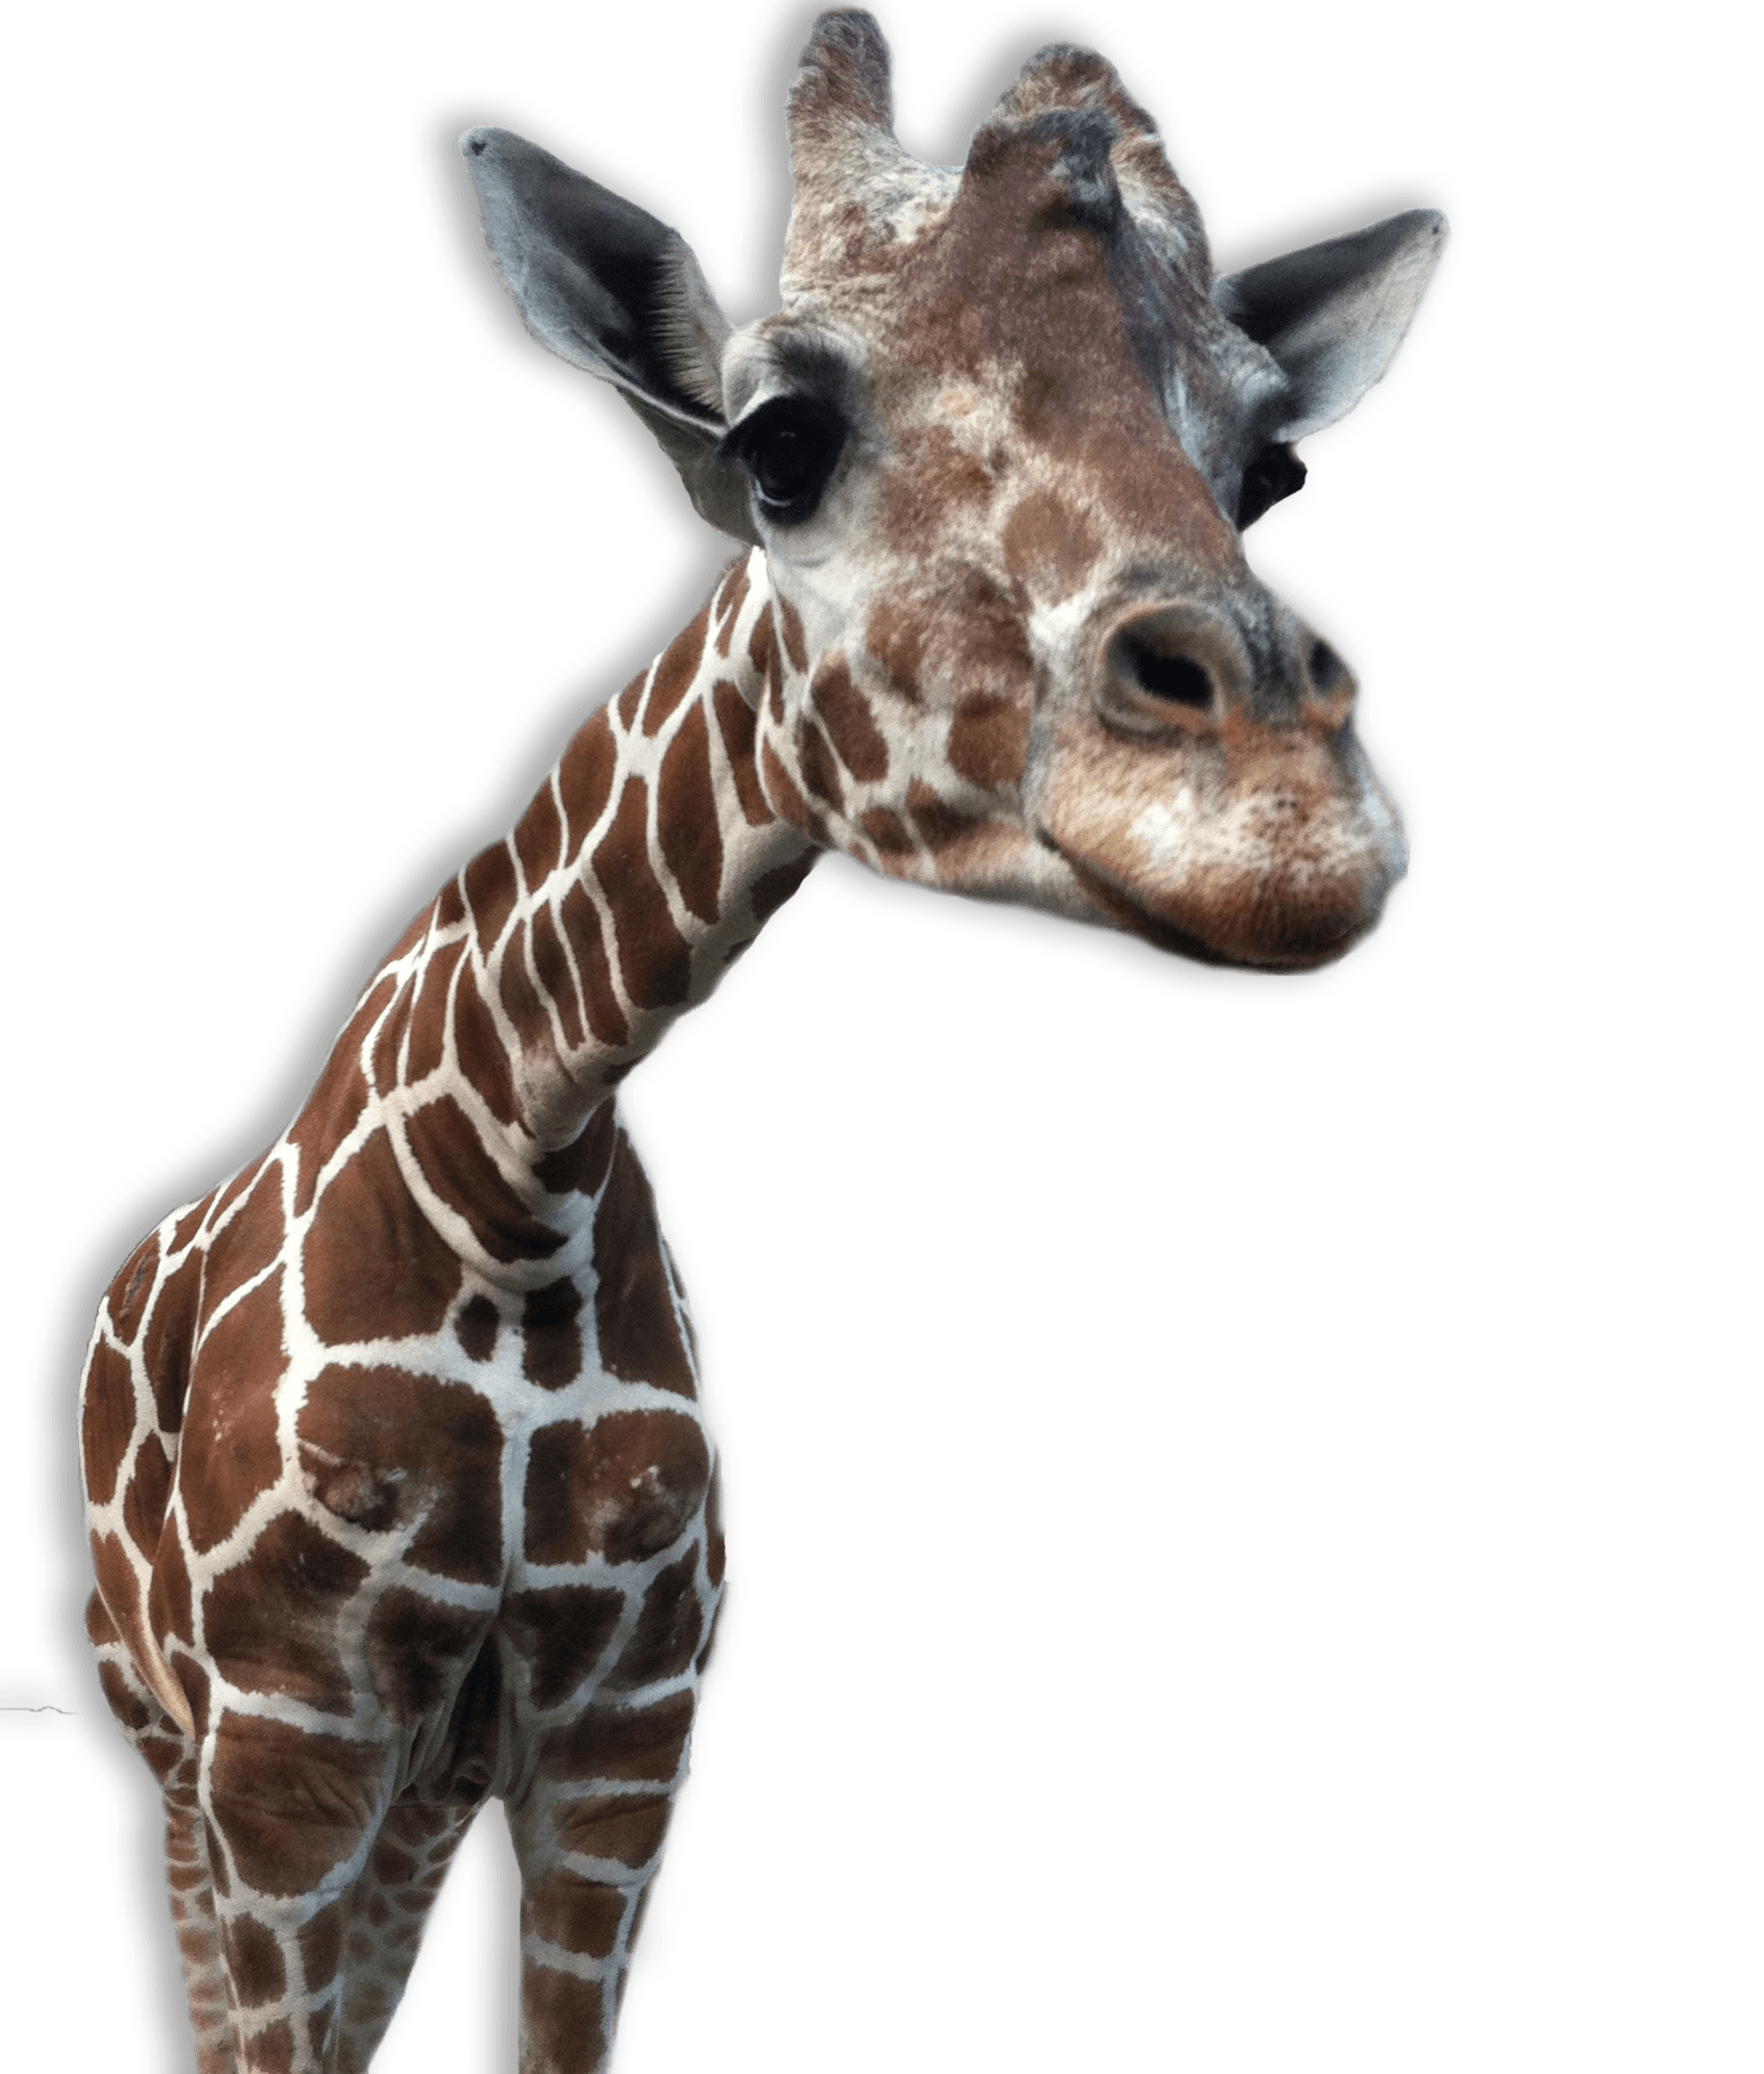 Giraffe clipart terrestrial animal. Transparent png stickpng close